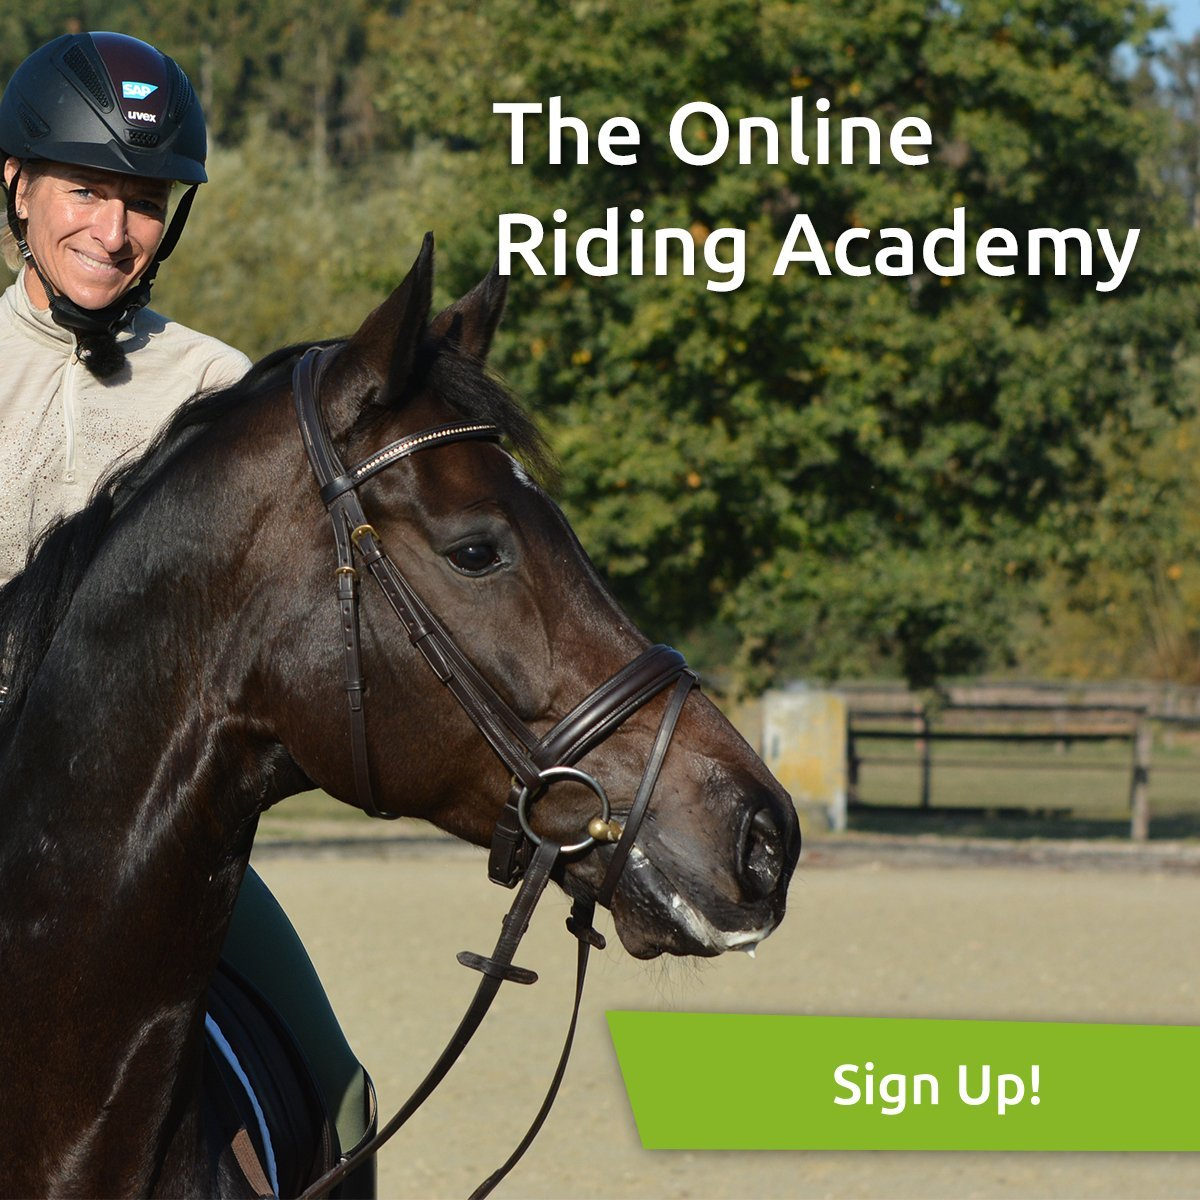 wehorse sign up